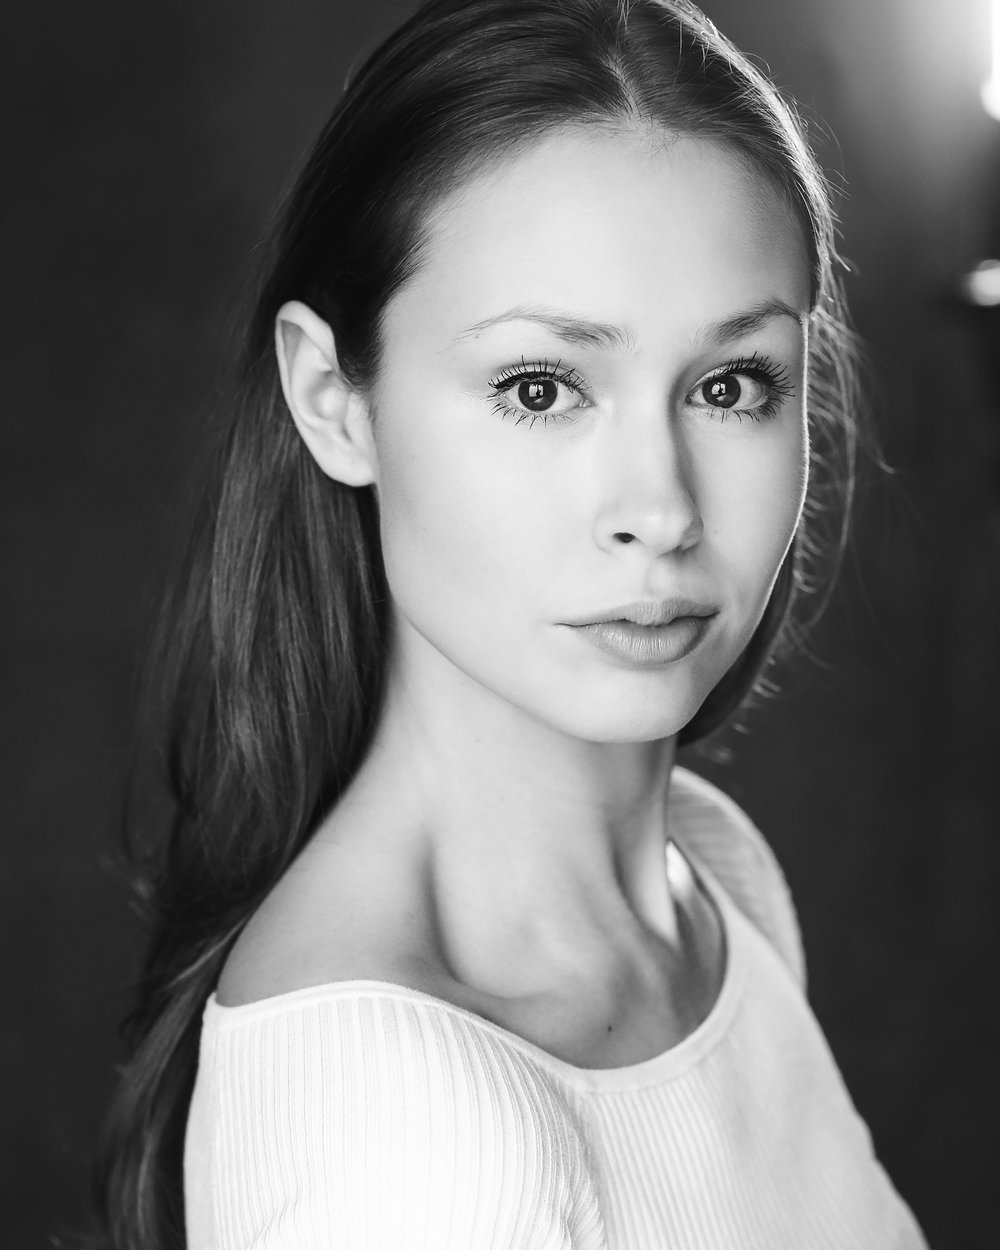 Lily Smith Lily Smith graduated from Guildford School of Acting in 2015 from the BA Hons Acting course. Lily has recently appeared in feature film 'Our Little Haven' and is currently filming as the lead in WWII feature film 'Sarah's War', both scheduled for release in 2017.